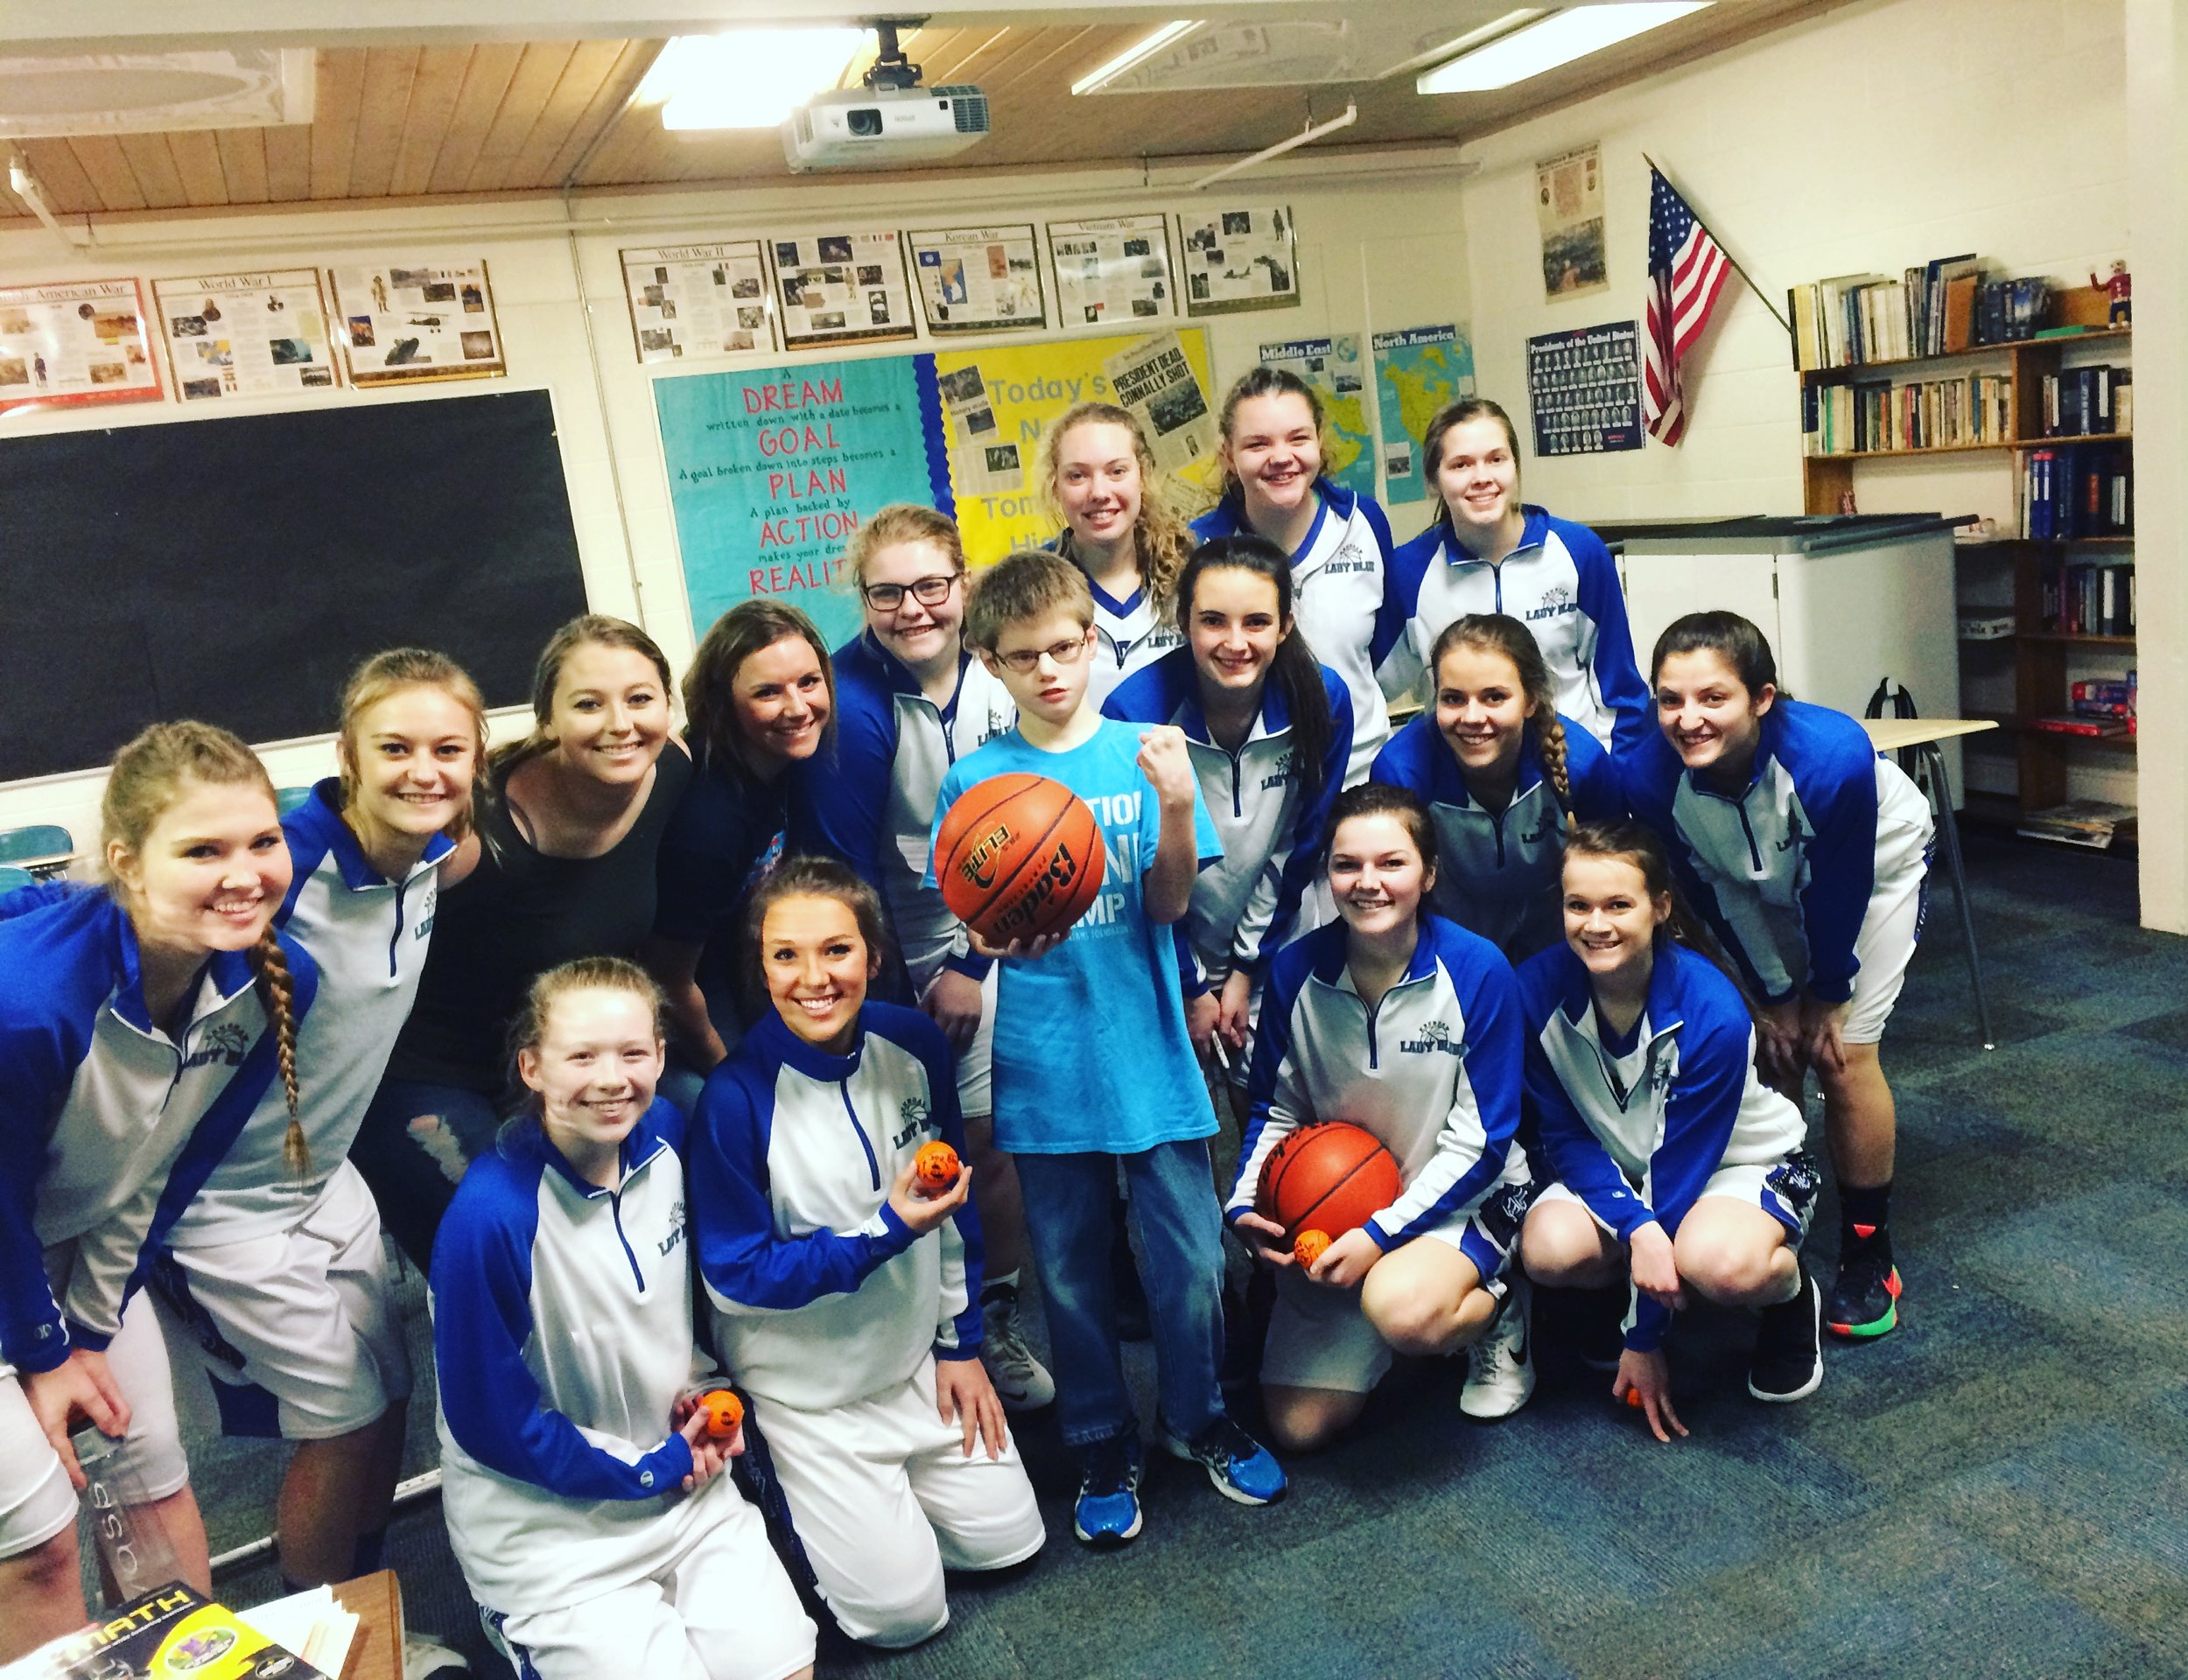 The Kenesaw Blue Devils had us over for an outing last season. Trae and I even got to speak to the team before the game! Grateful for the support!